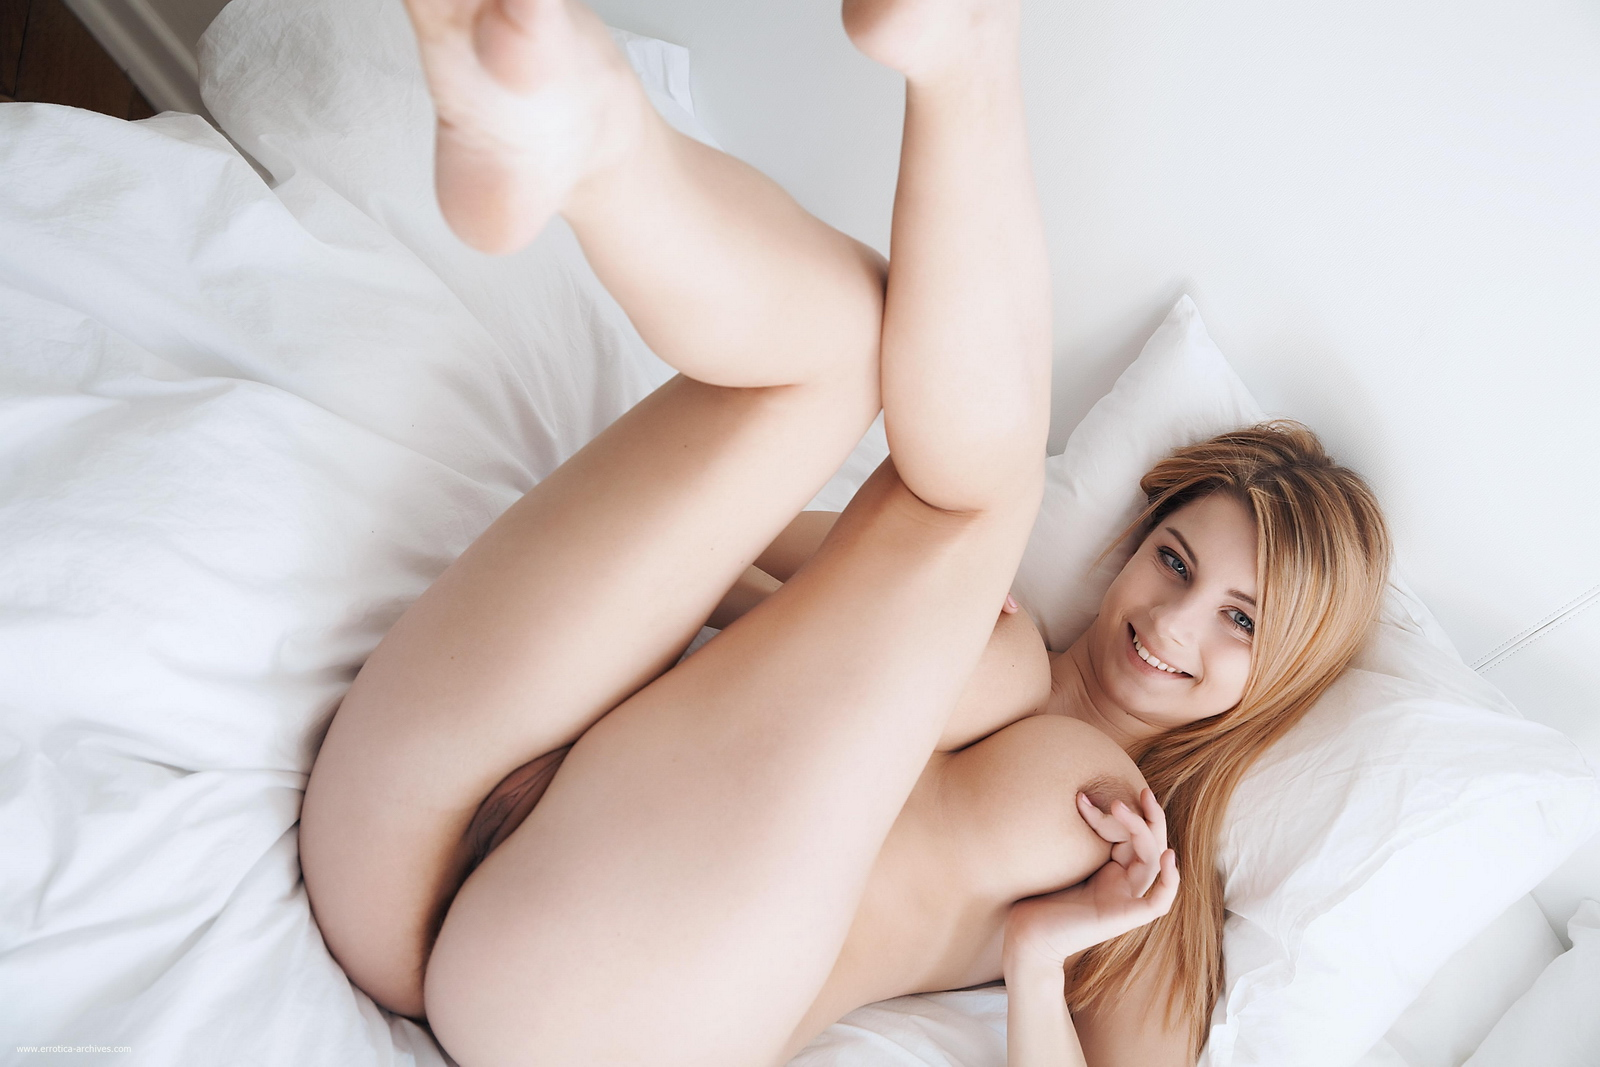 cathy-huge-tits-bedroom-naked-errotica-archives-19